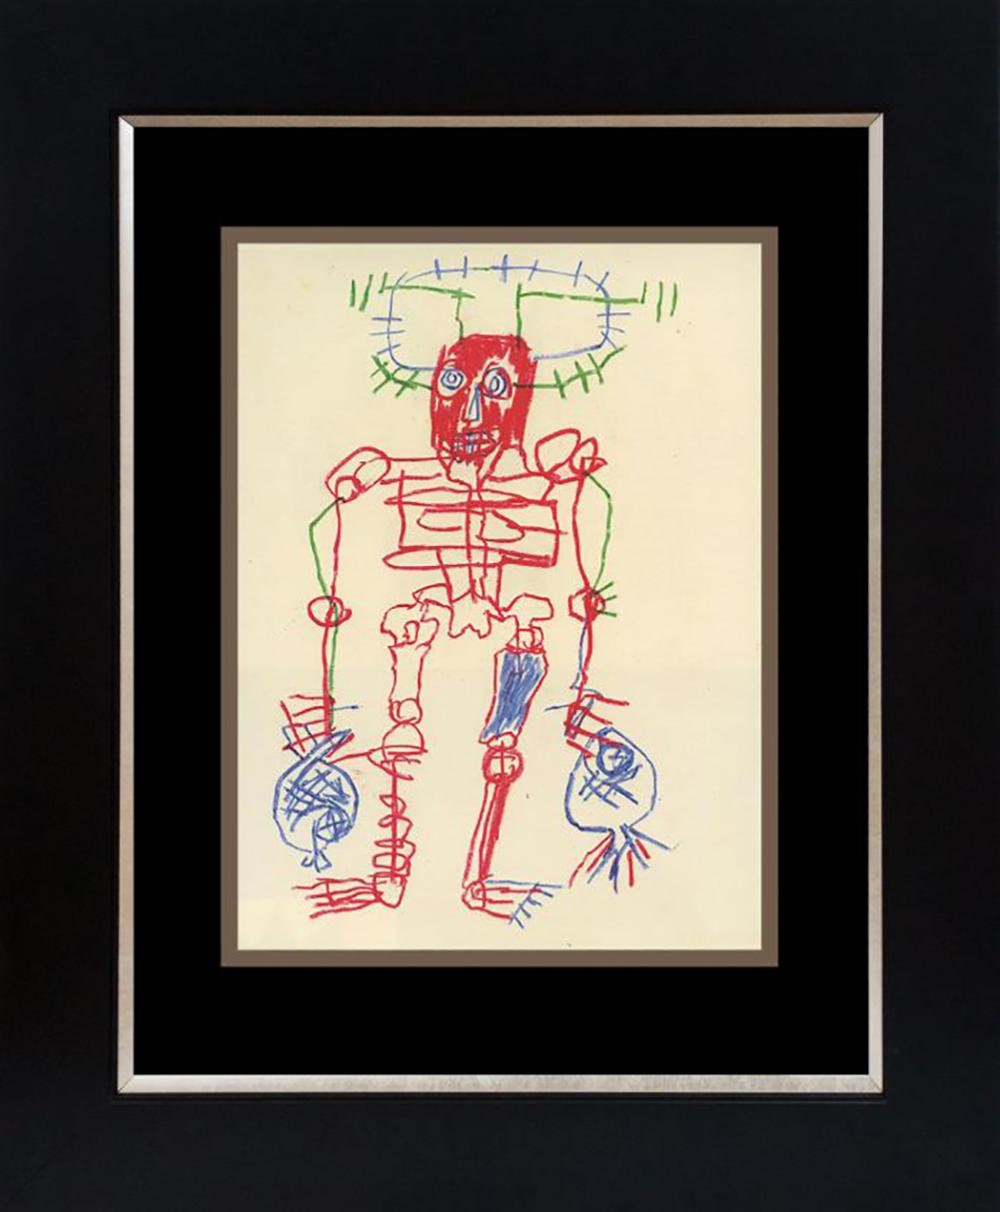 Jean Michel Basquiat Lithograph from 1983